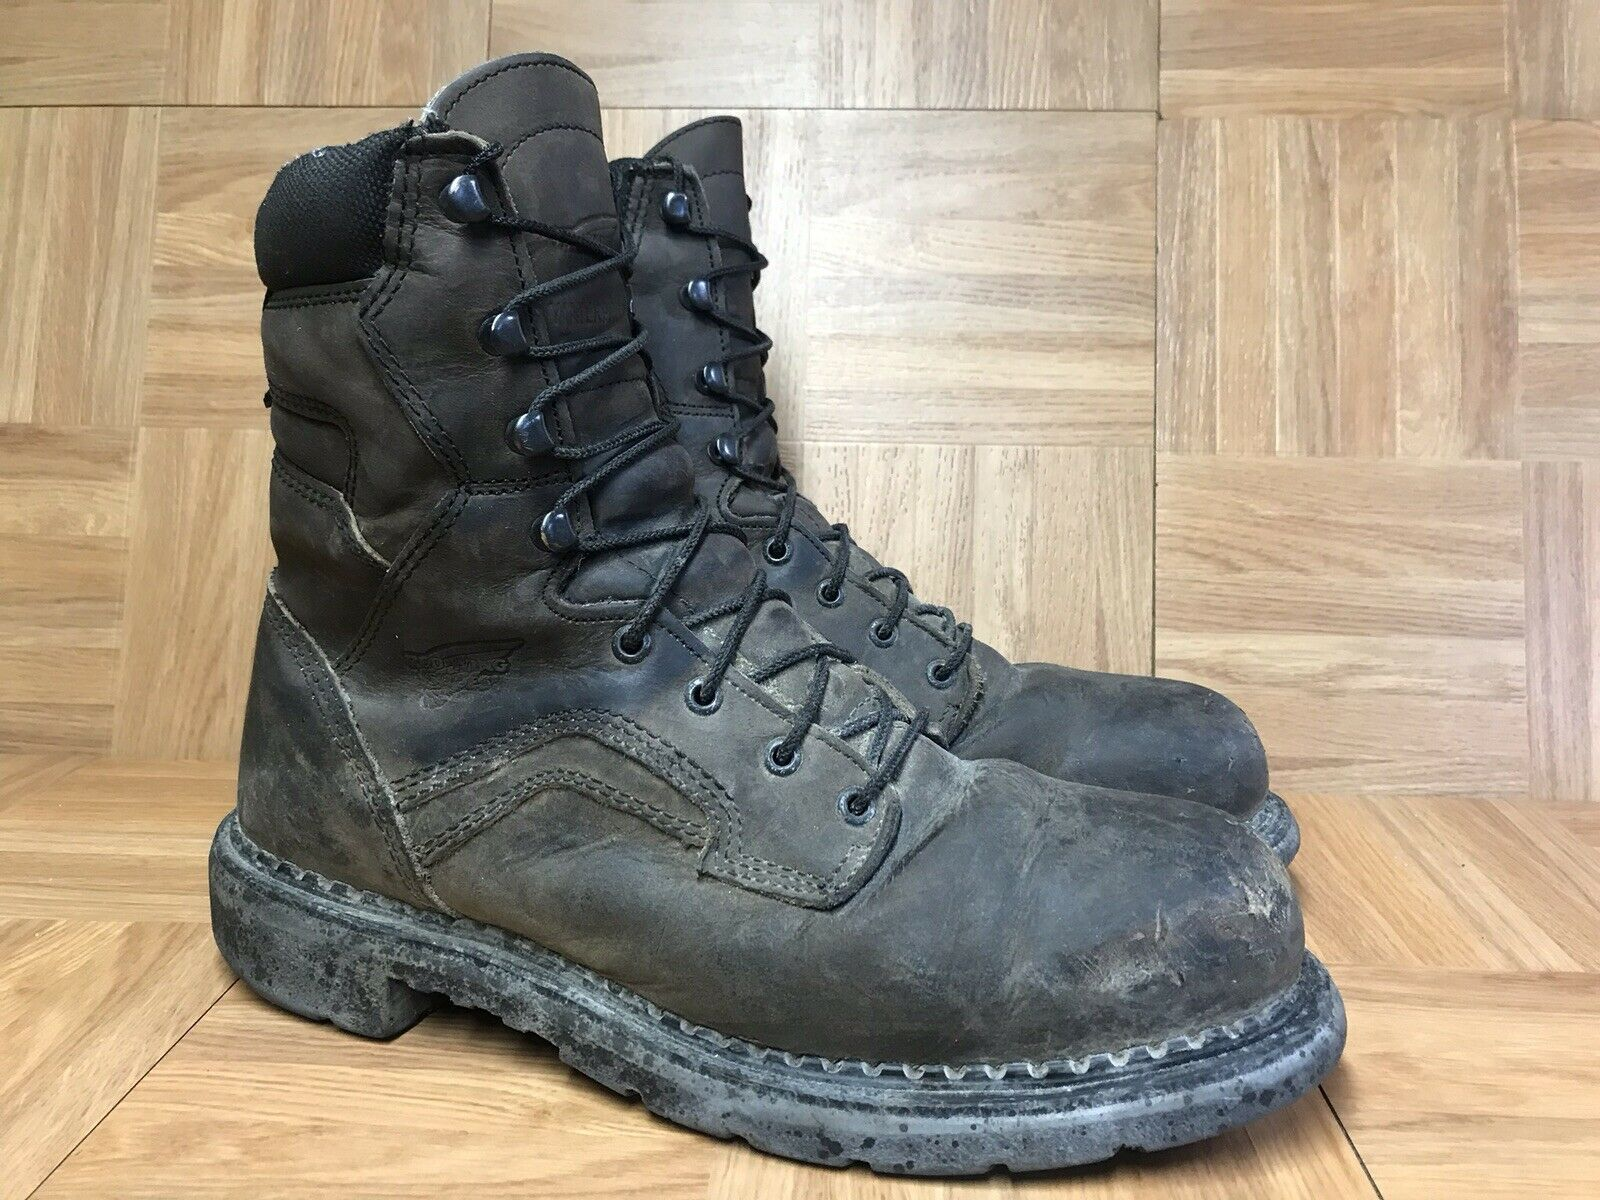 RARE  rouge Wing Electrical 8  4414 Steel Toe Work bottes Sz 10.5 made in USA brwn